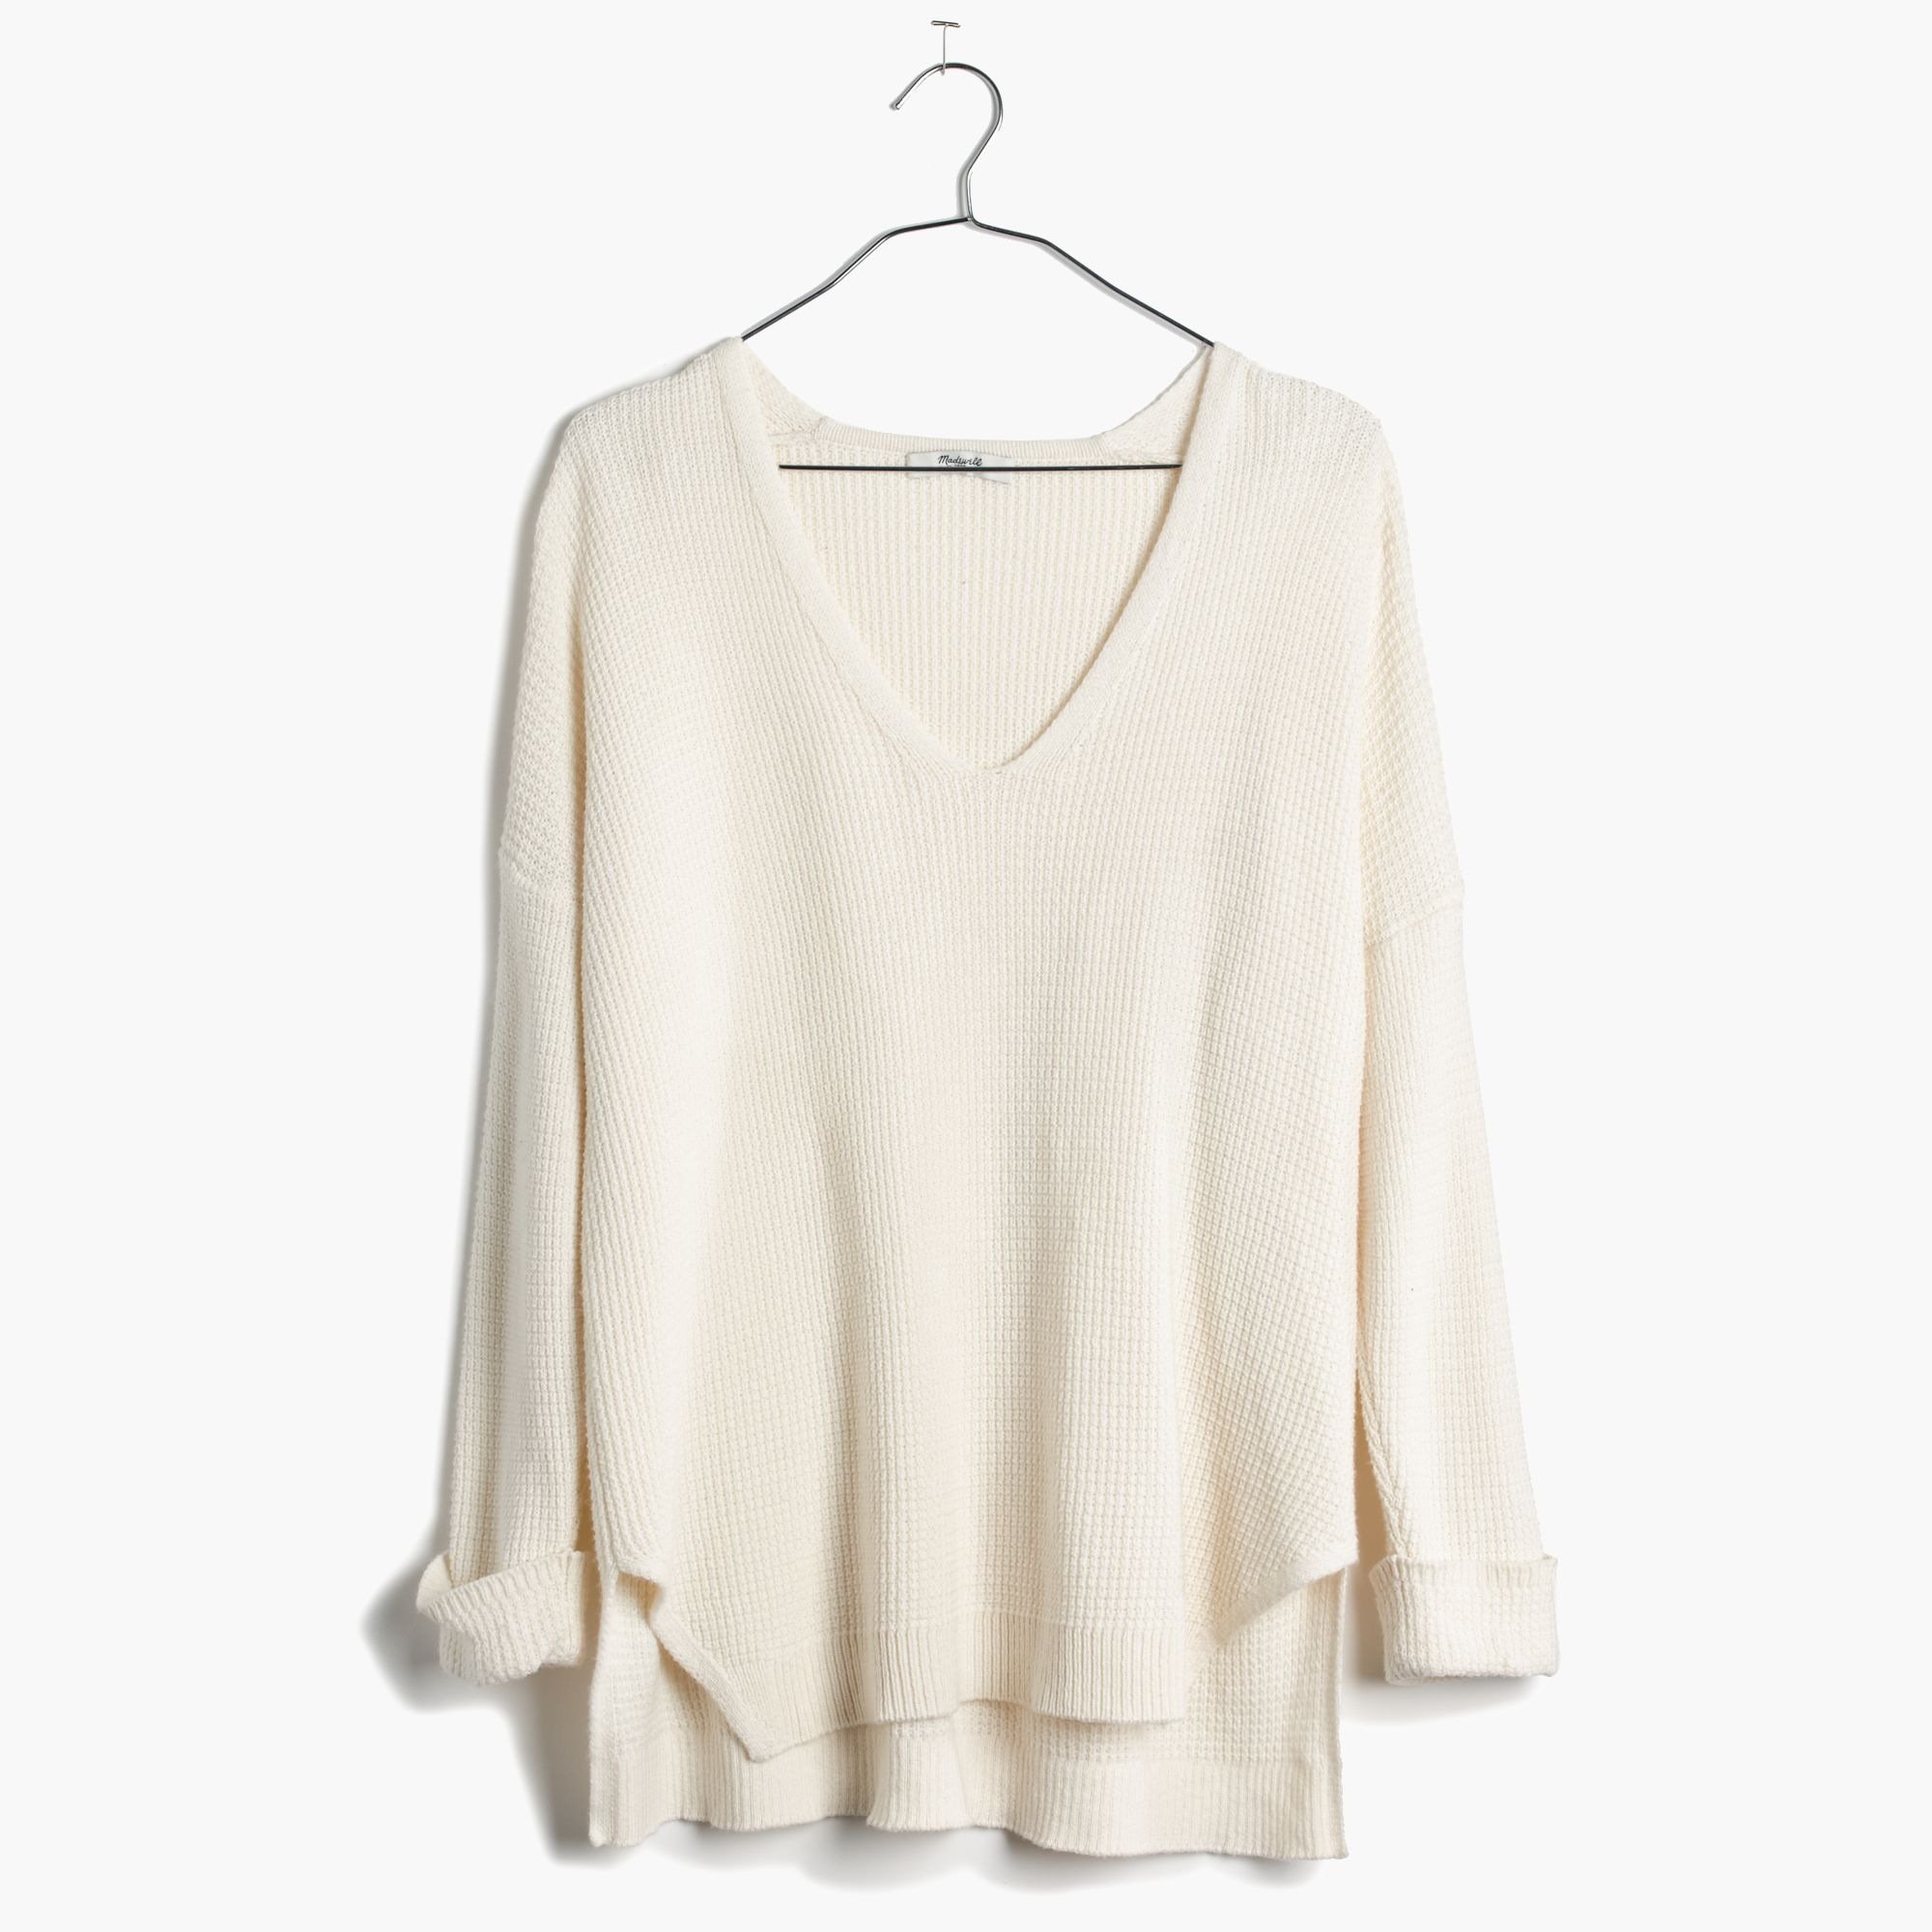 Madewell Oceanside Pullover Sweater in White | Lyst